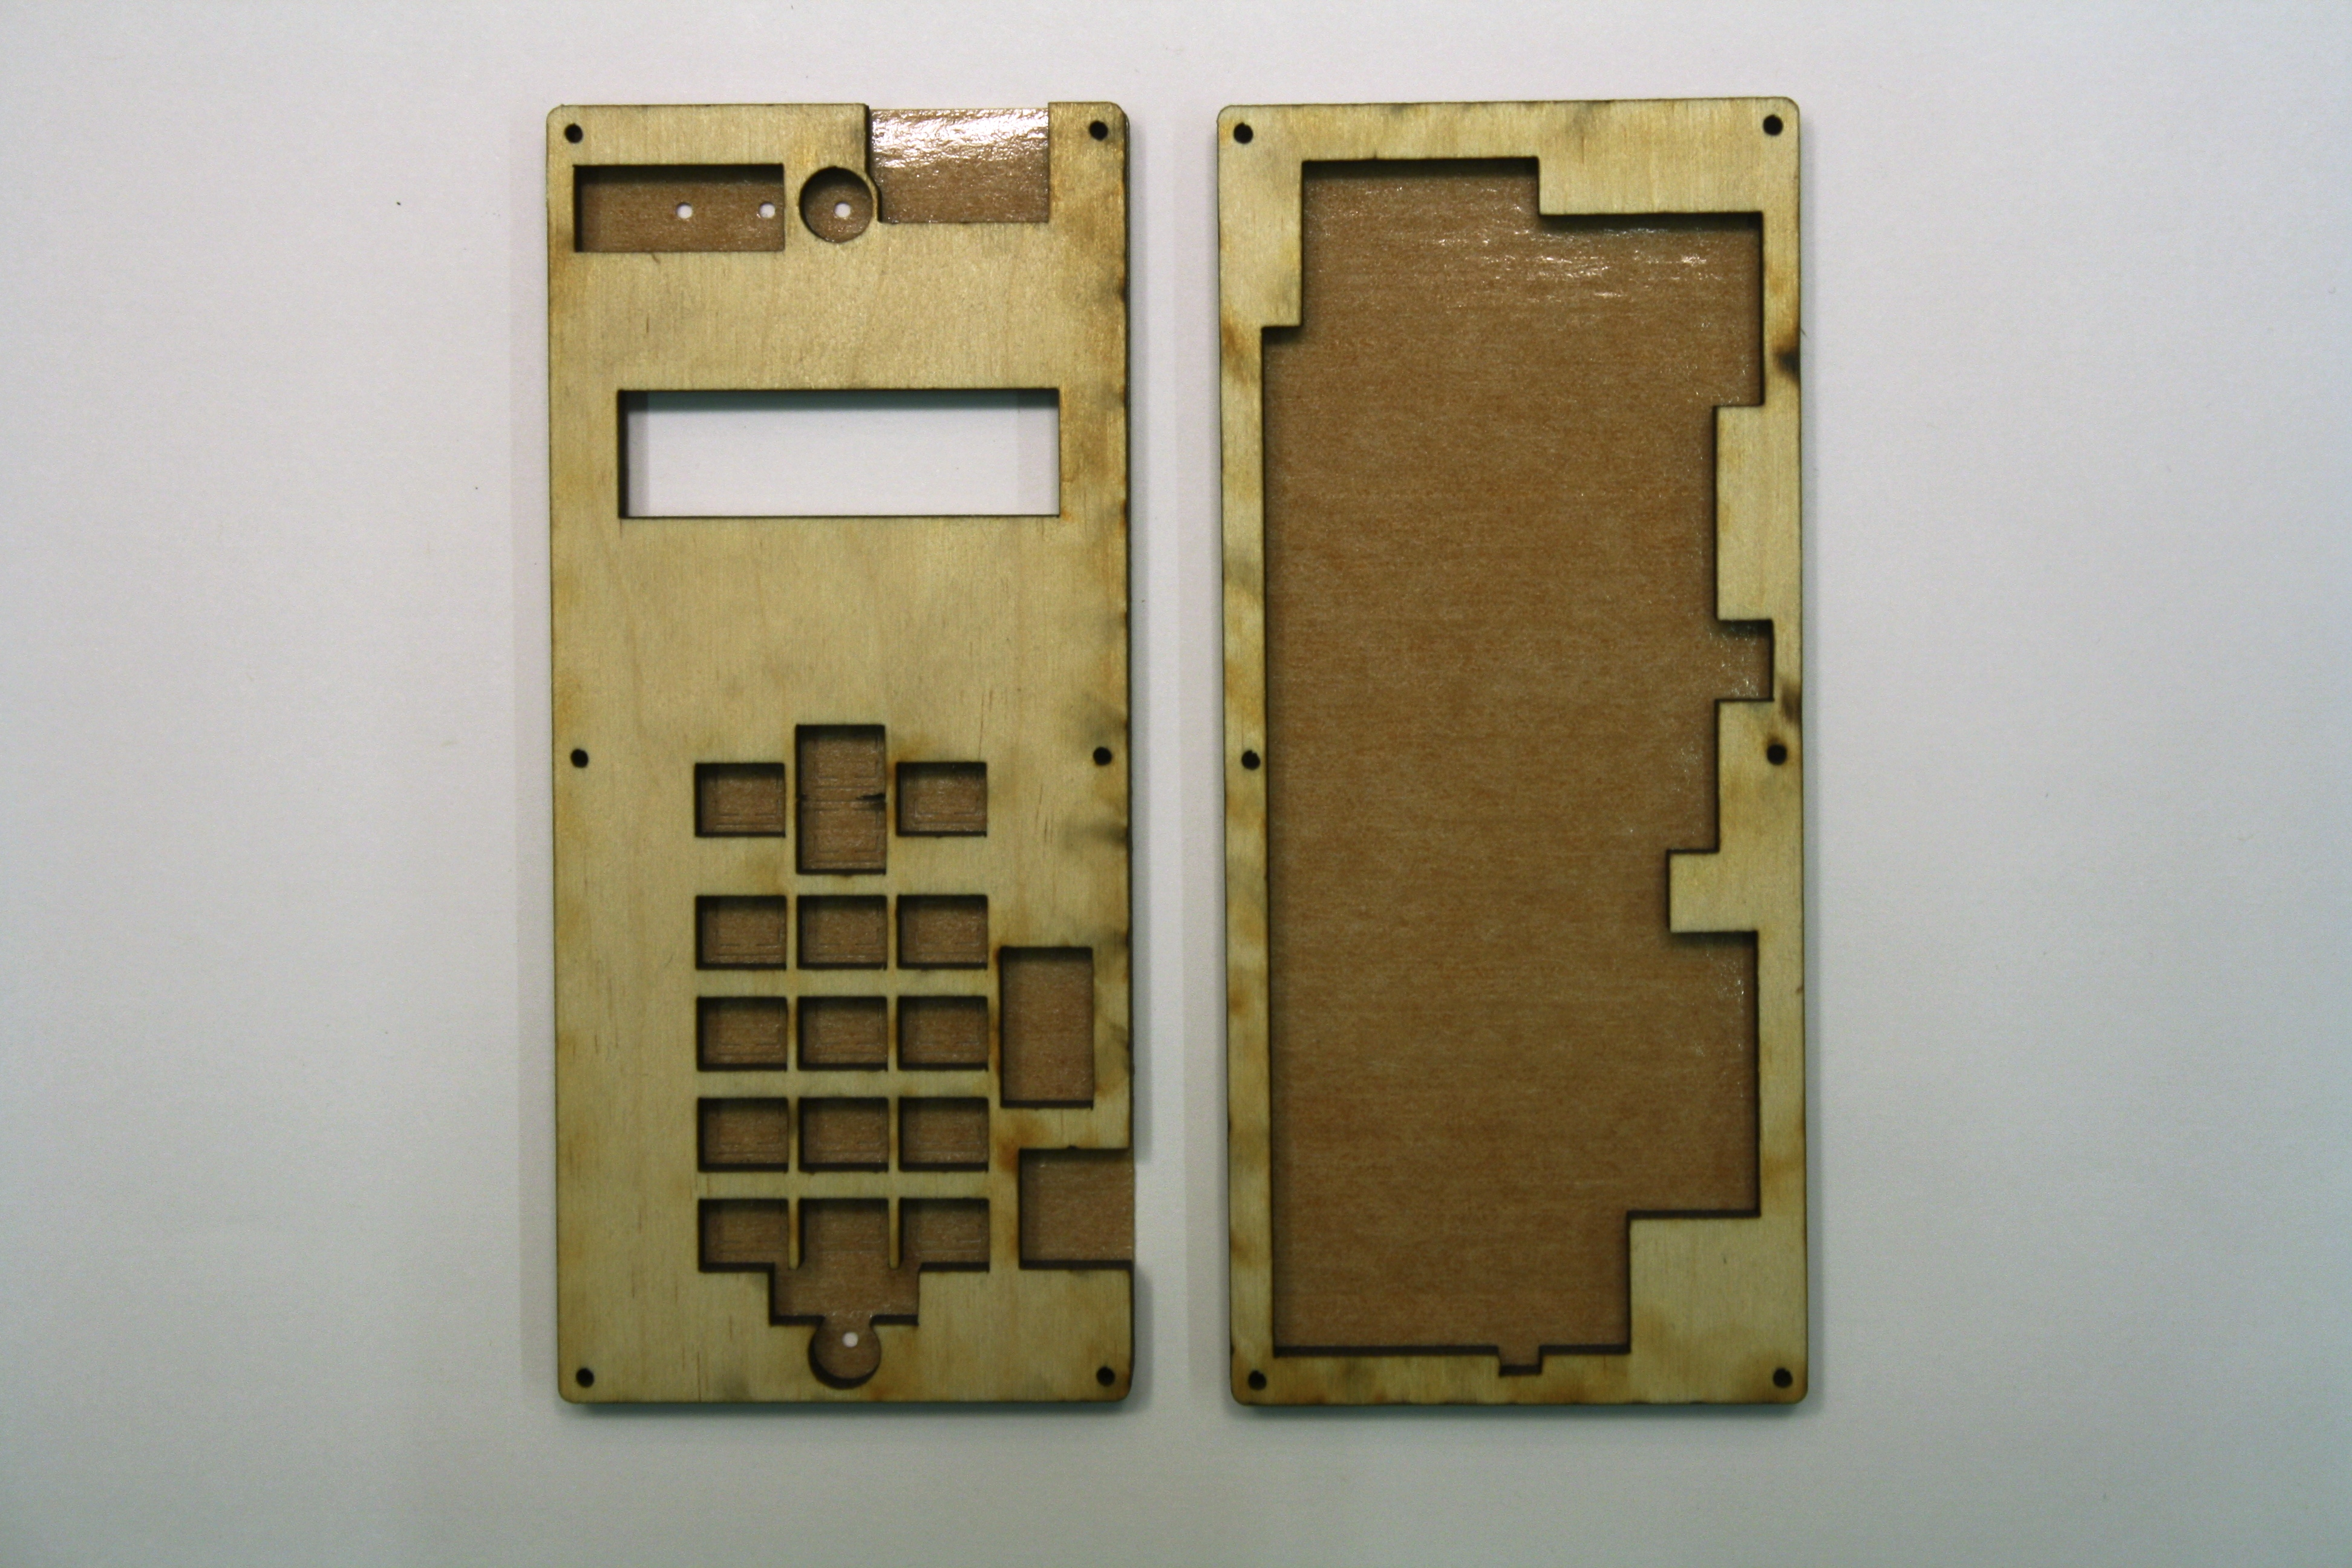 Picture of Laser-cut and Assemble the Enclosure.